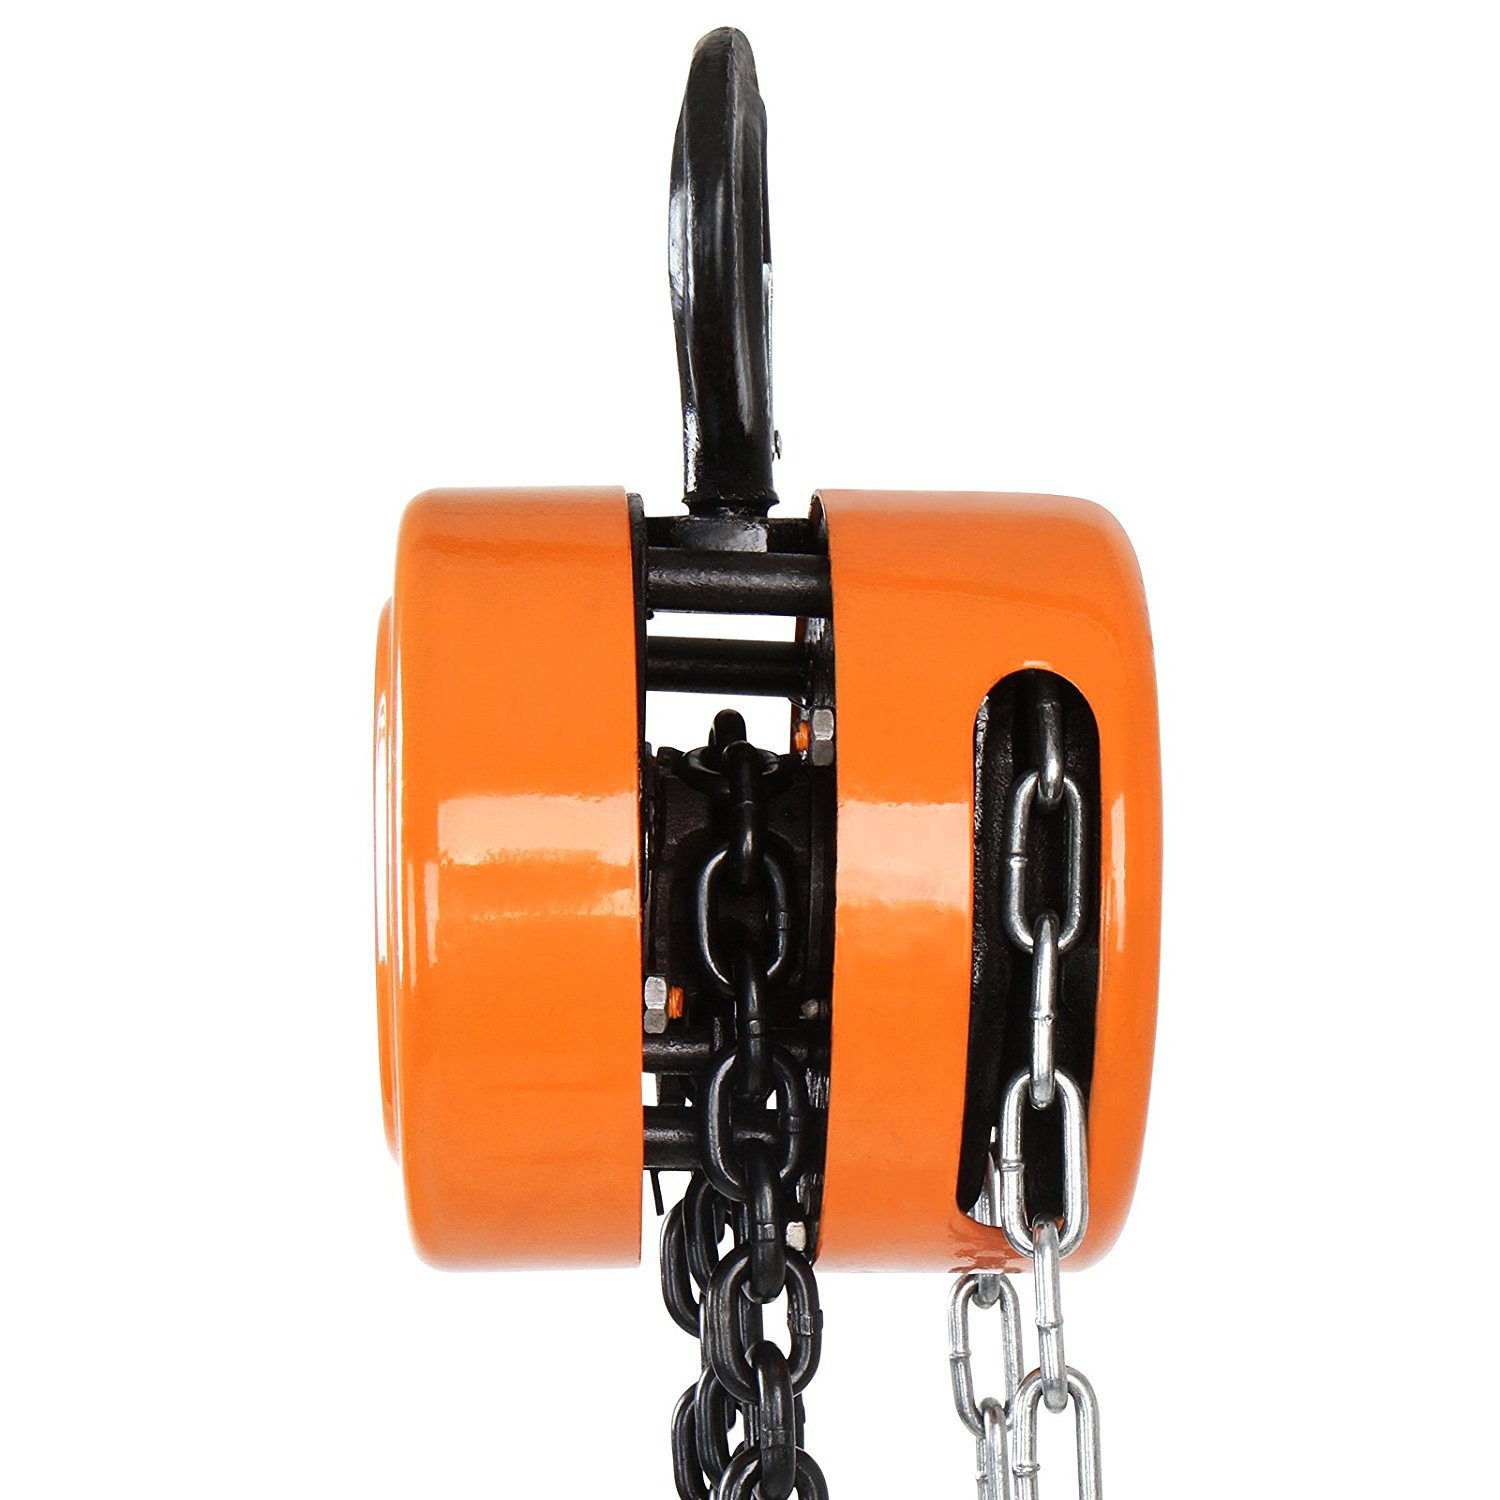 Lifting Block And Tackle : Ton chain lifting block tackle hoist heavy duty load